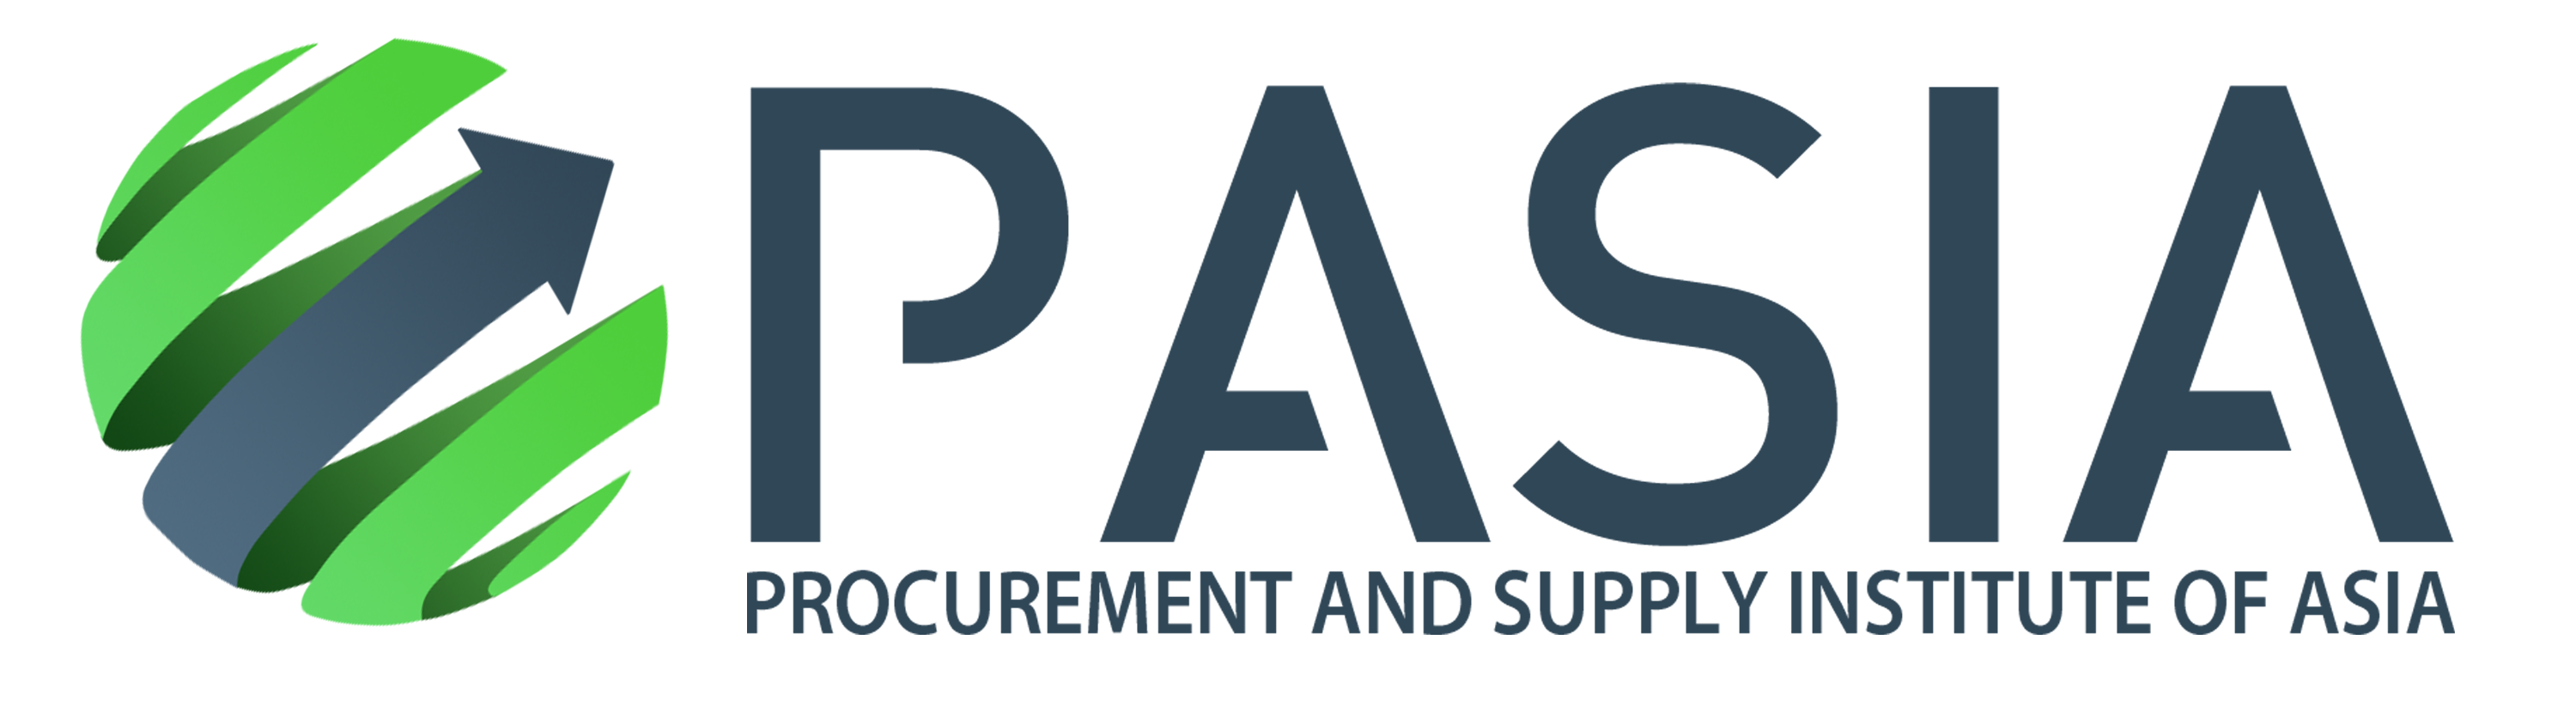 PASIA, Procurement and Supply Institute of Asia